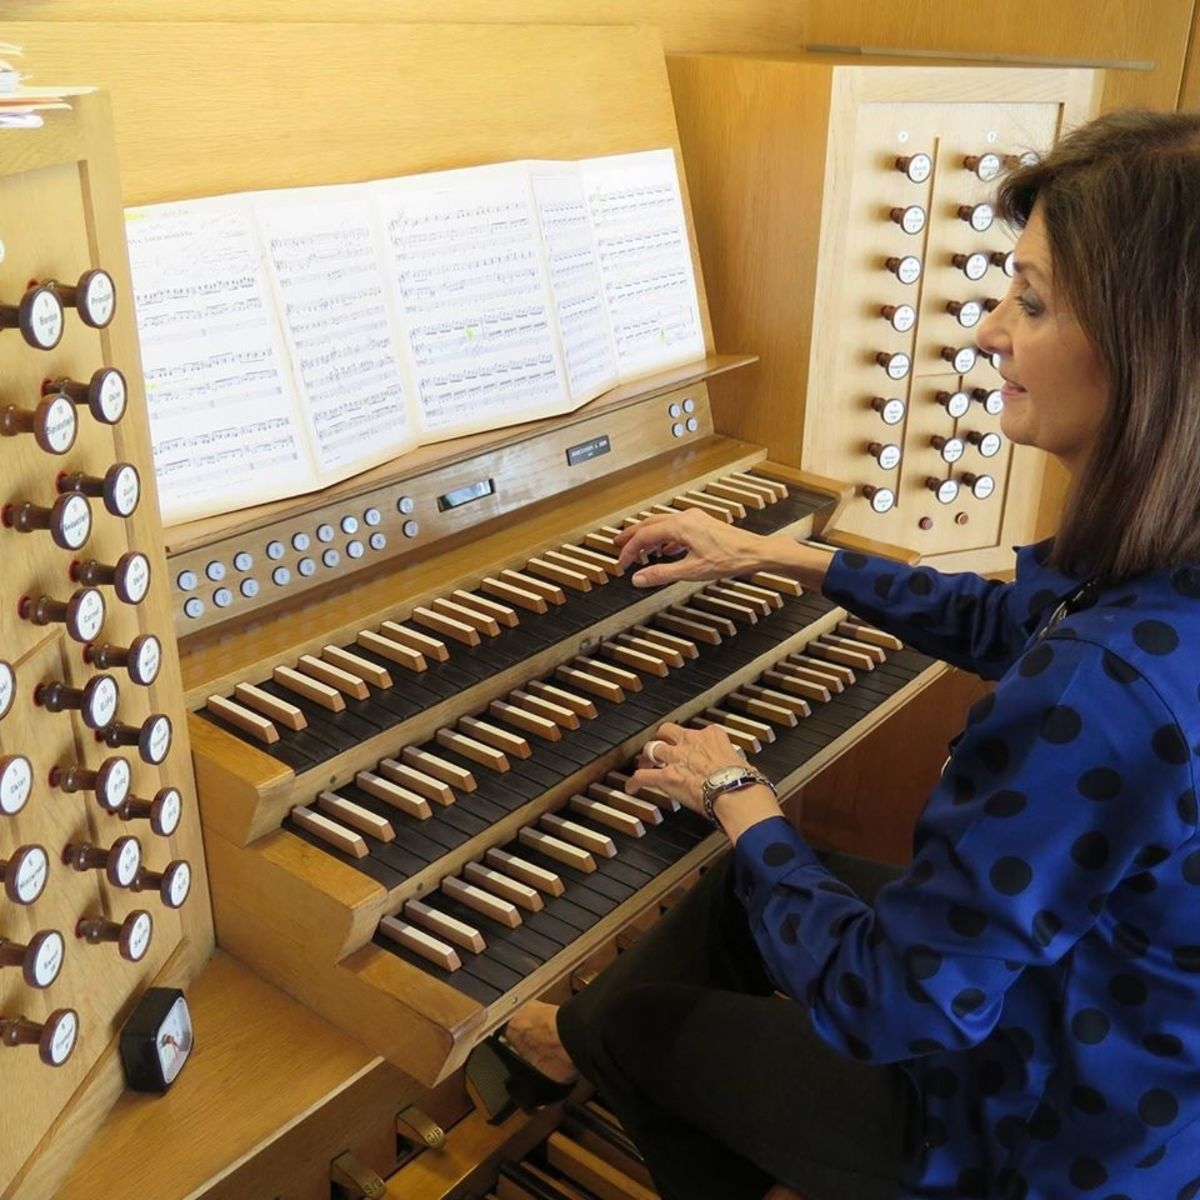 BYU's Jerusalem Center Organ.